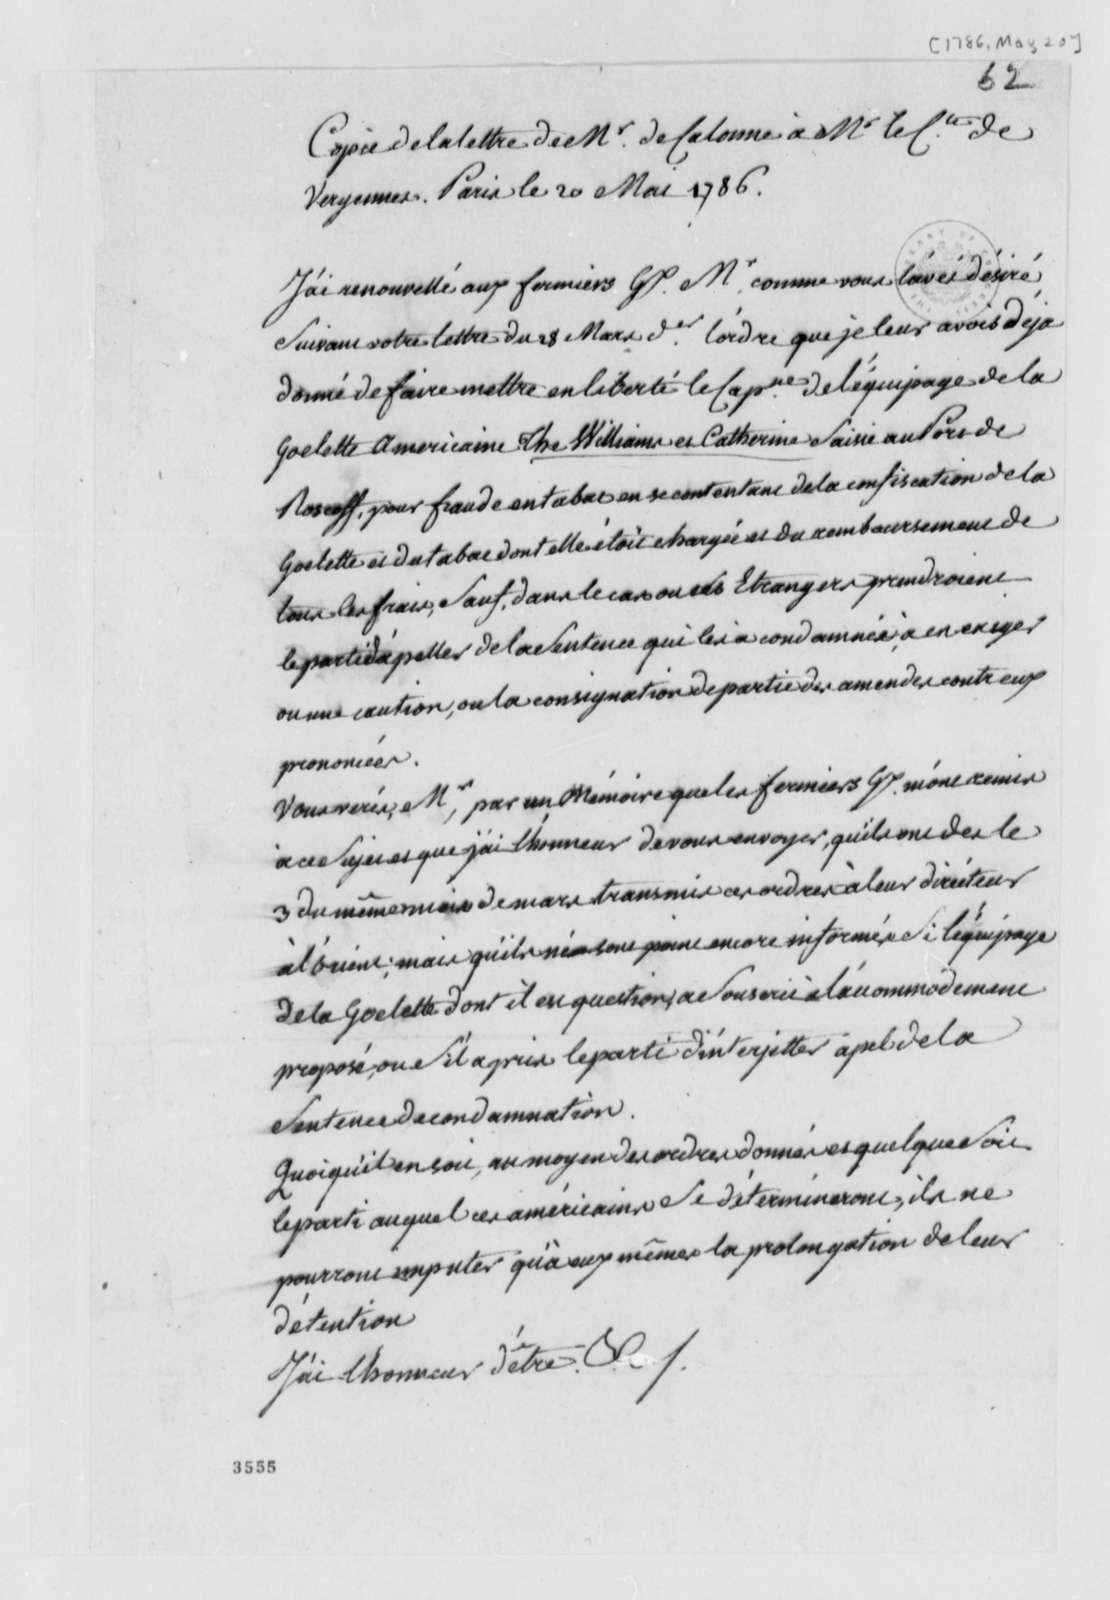 Charles Alexandre de Calonne to Charles Gravier, Comte de Vergennes, May 20, 1786, in French